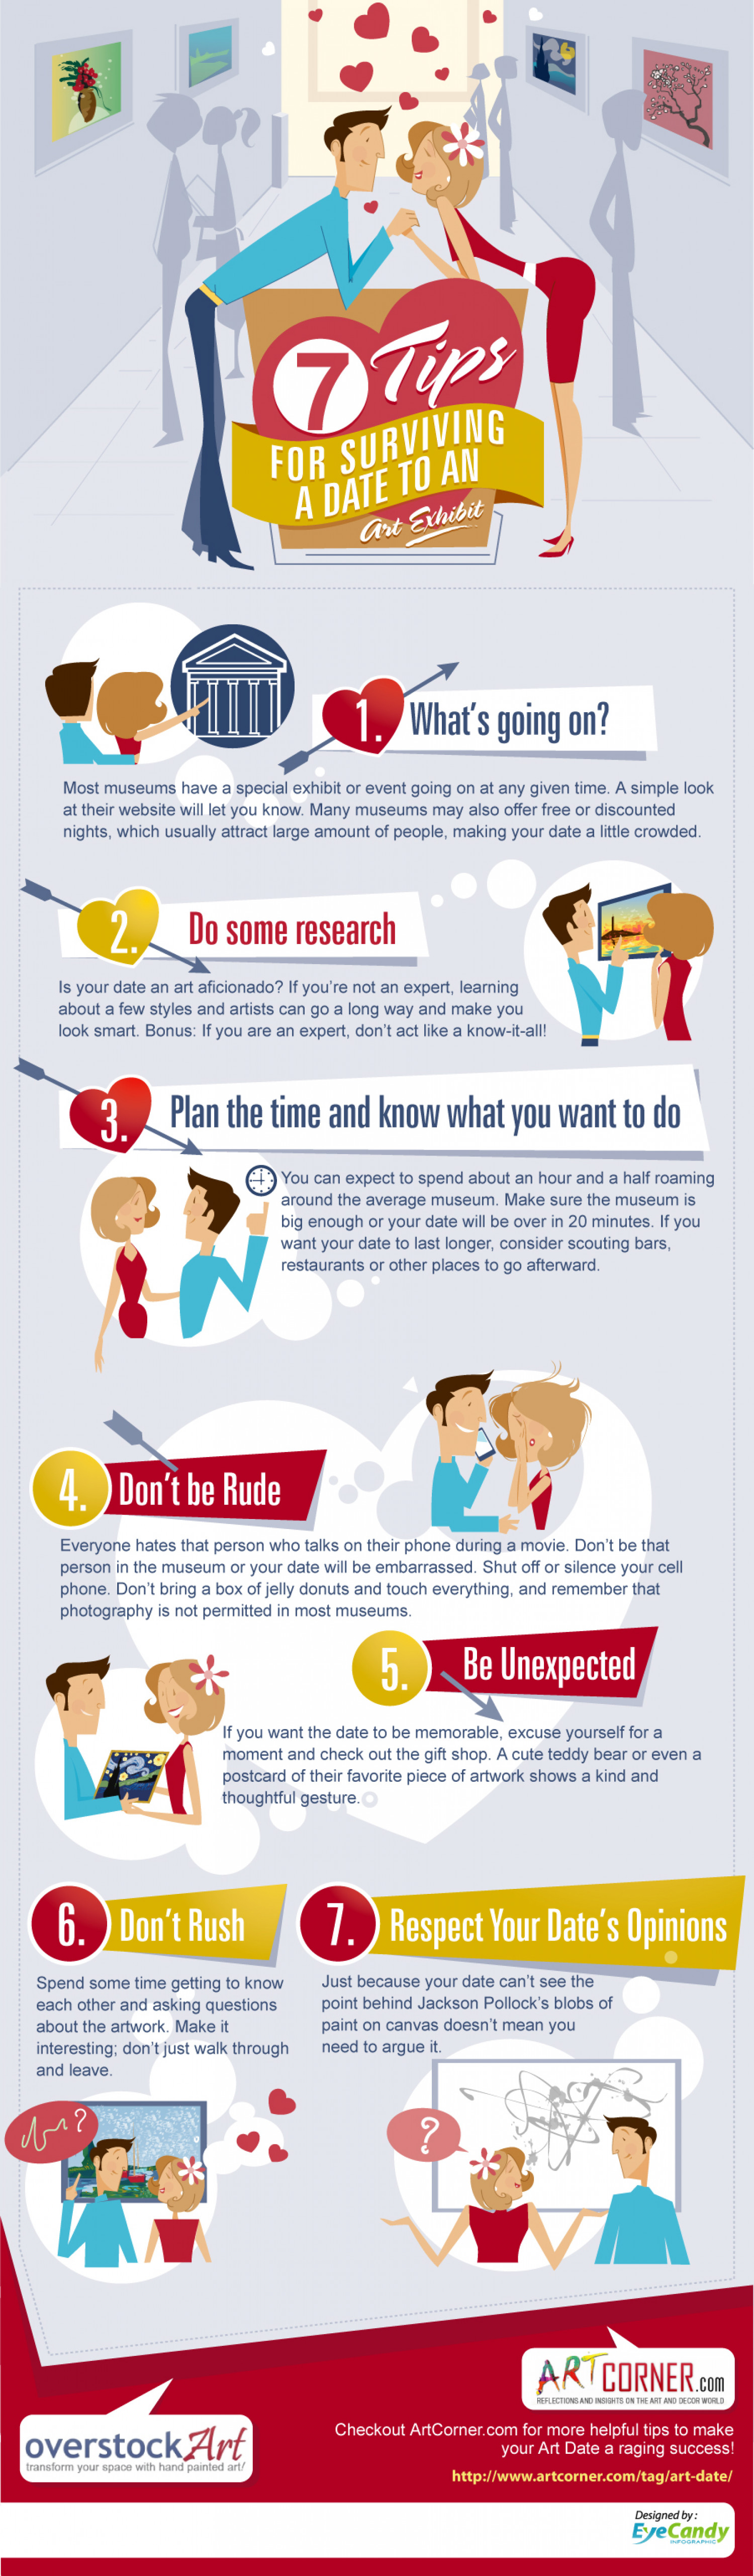 Seven Tips to Surviving a Date to the Art Museum Infographic